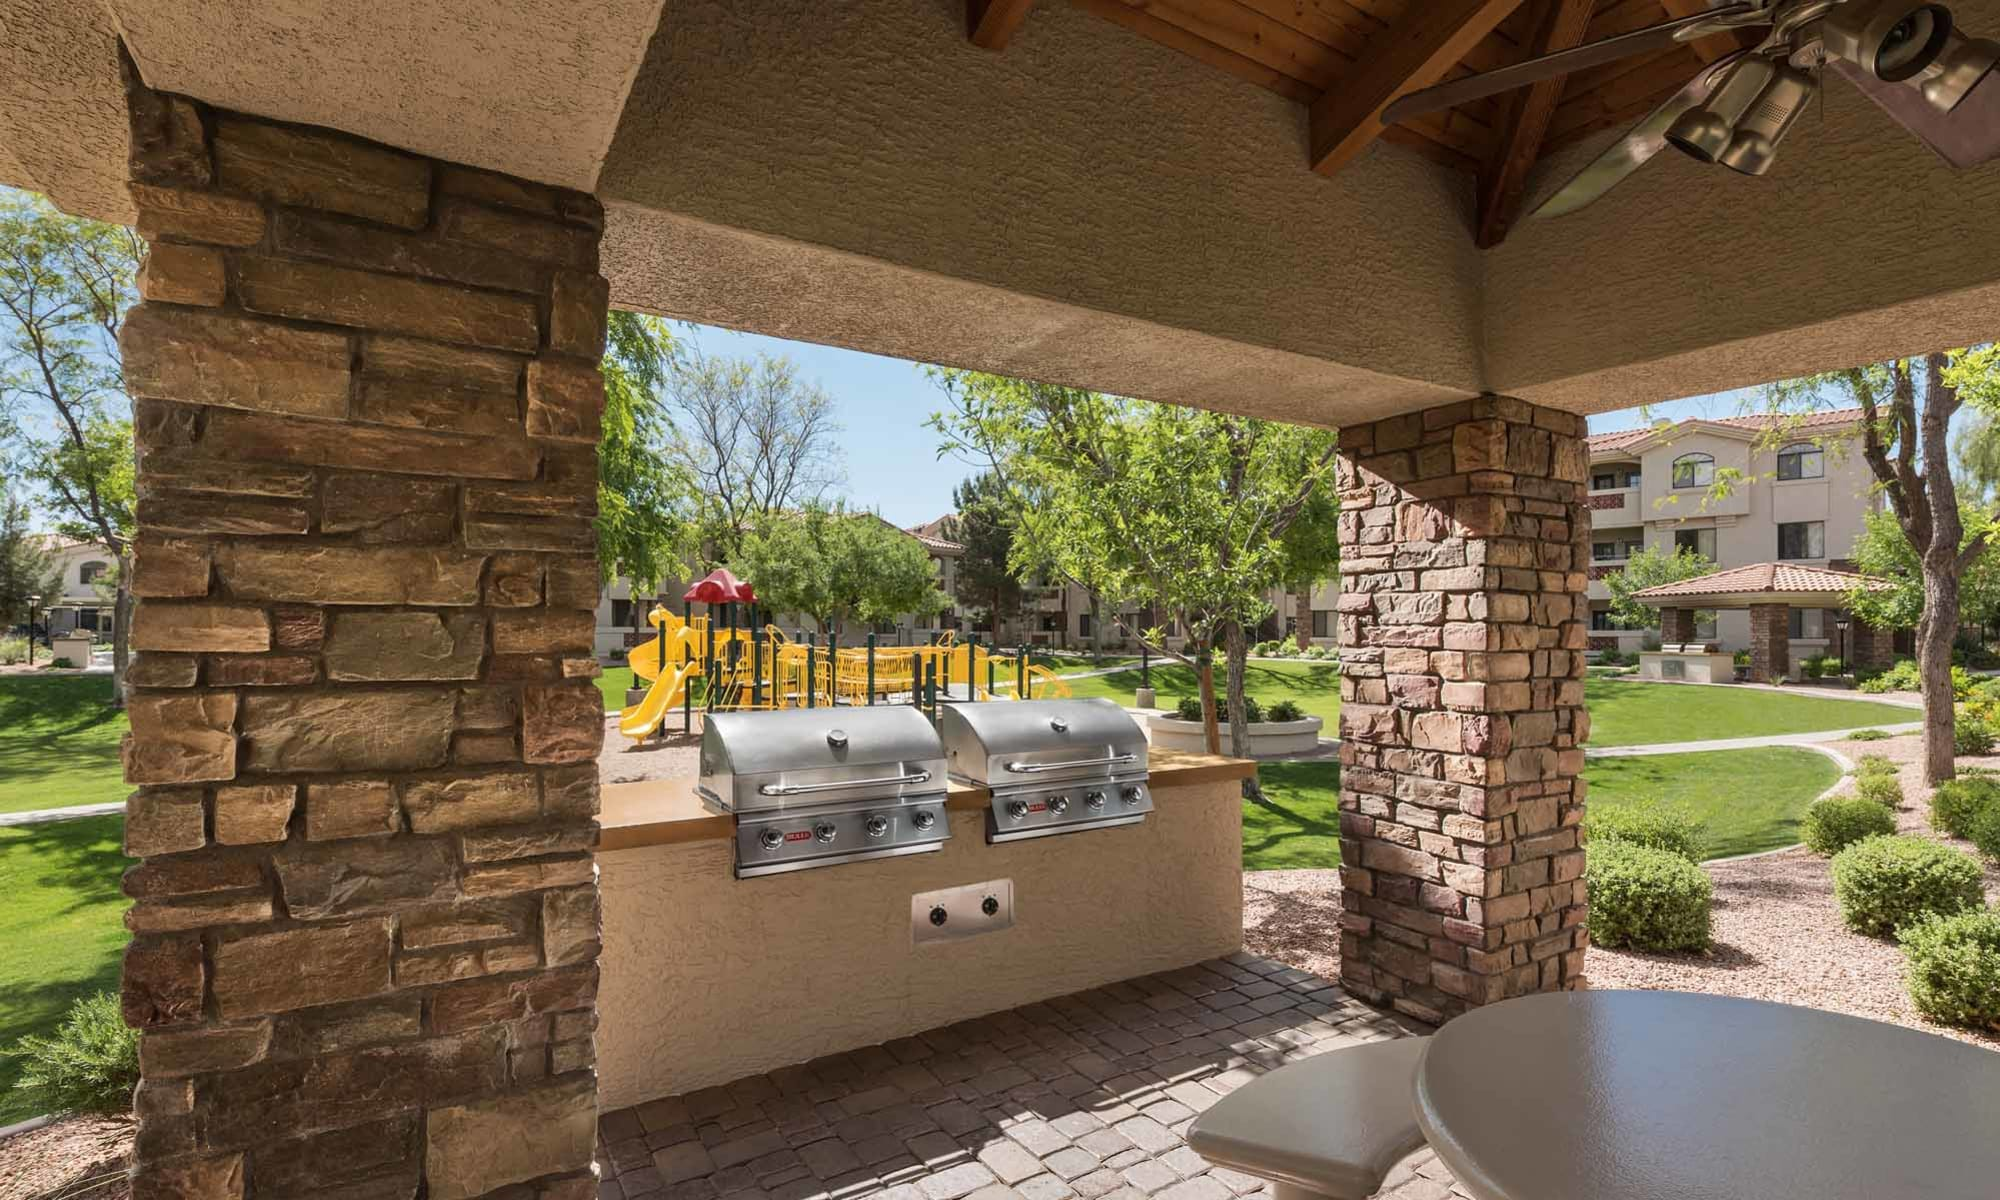 Luxury bbq area at San Hacienda in Chandler, Arizona